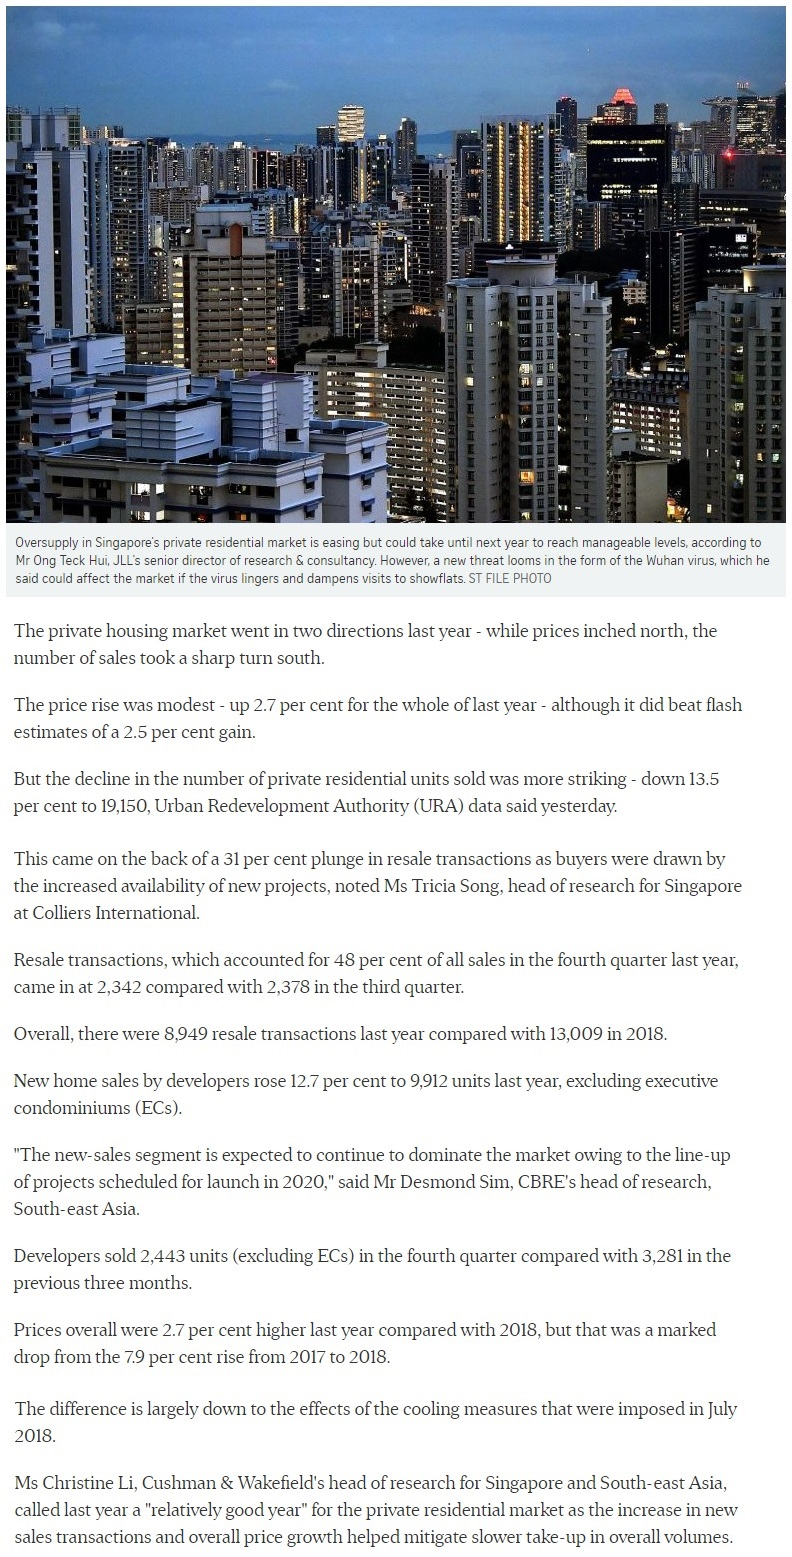 Pefect Ten - Singapore private home prices inch up 2.7% for 2019 Part 1